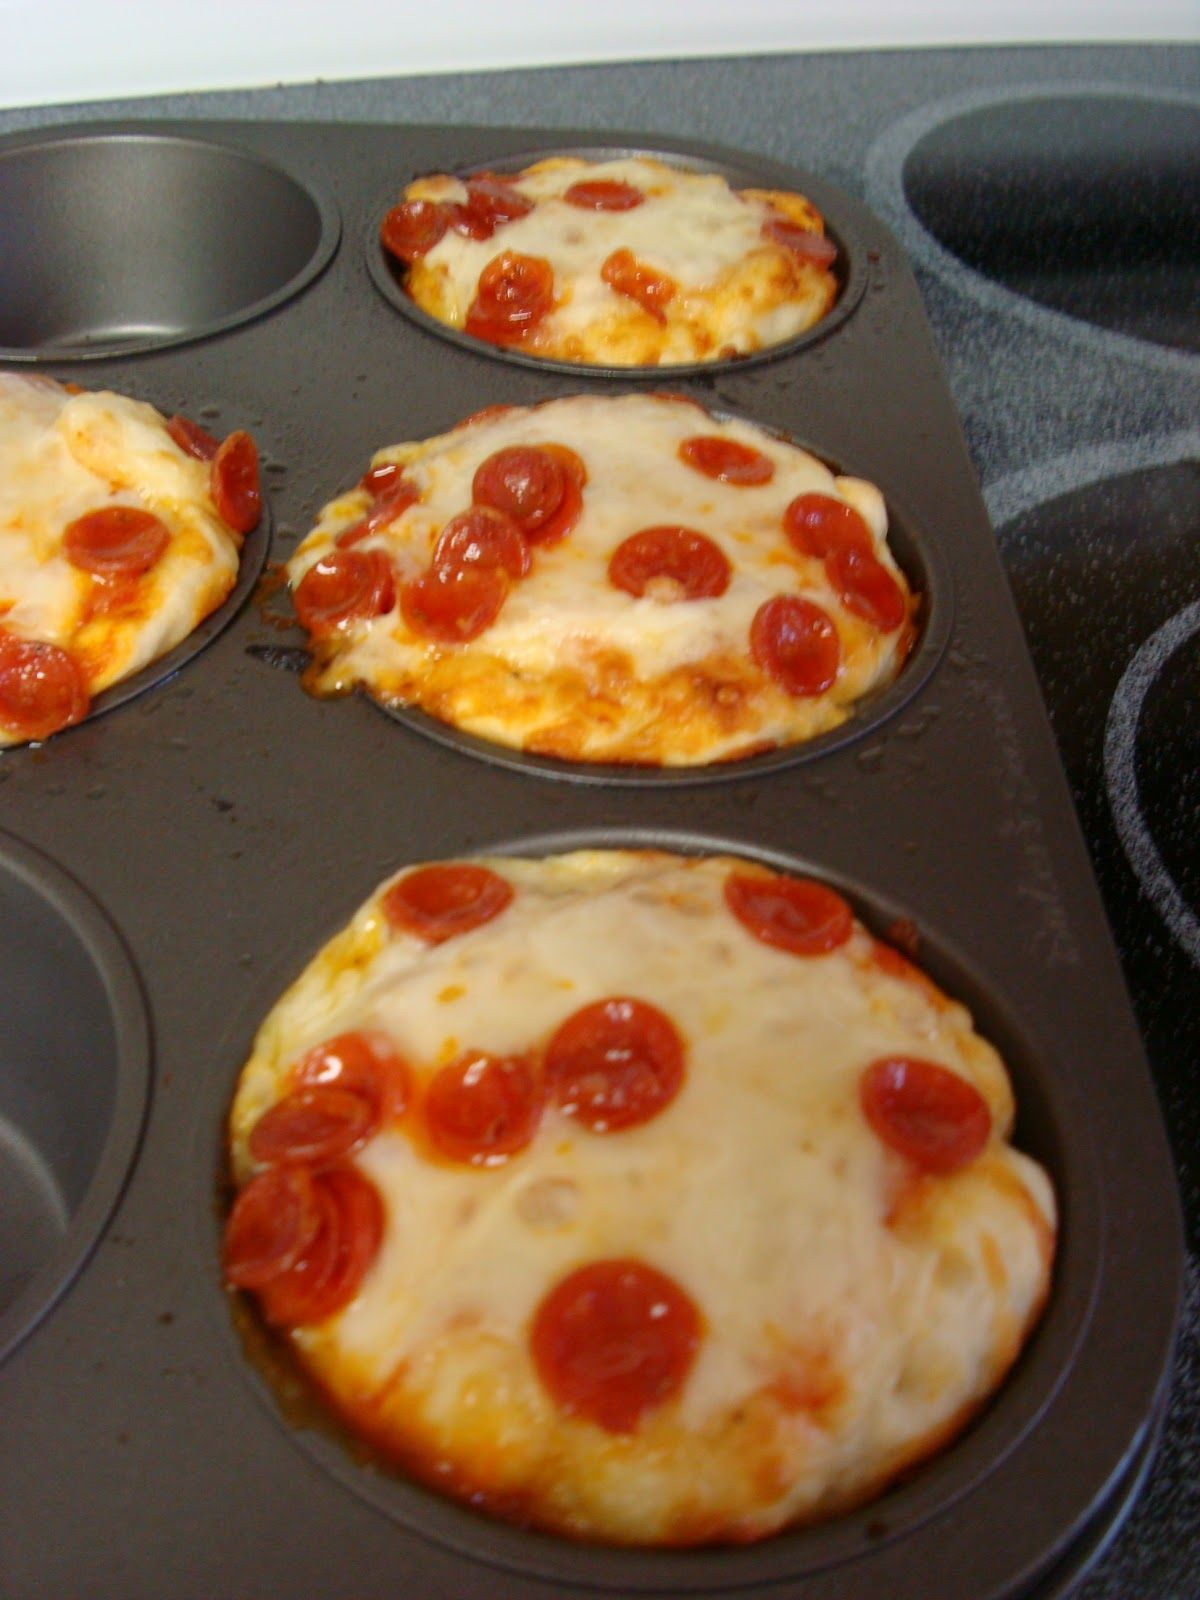 Cupcake Mold Pizzas. Good idea and so many learning applications for kids.